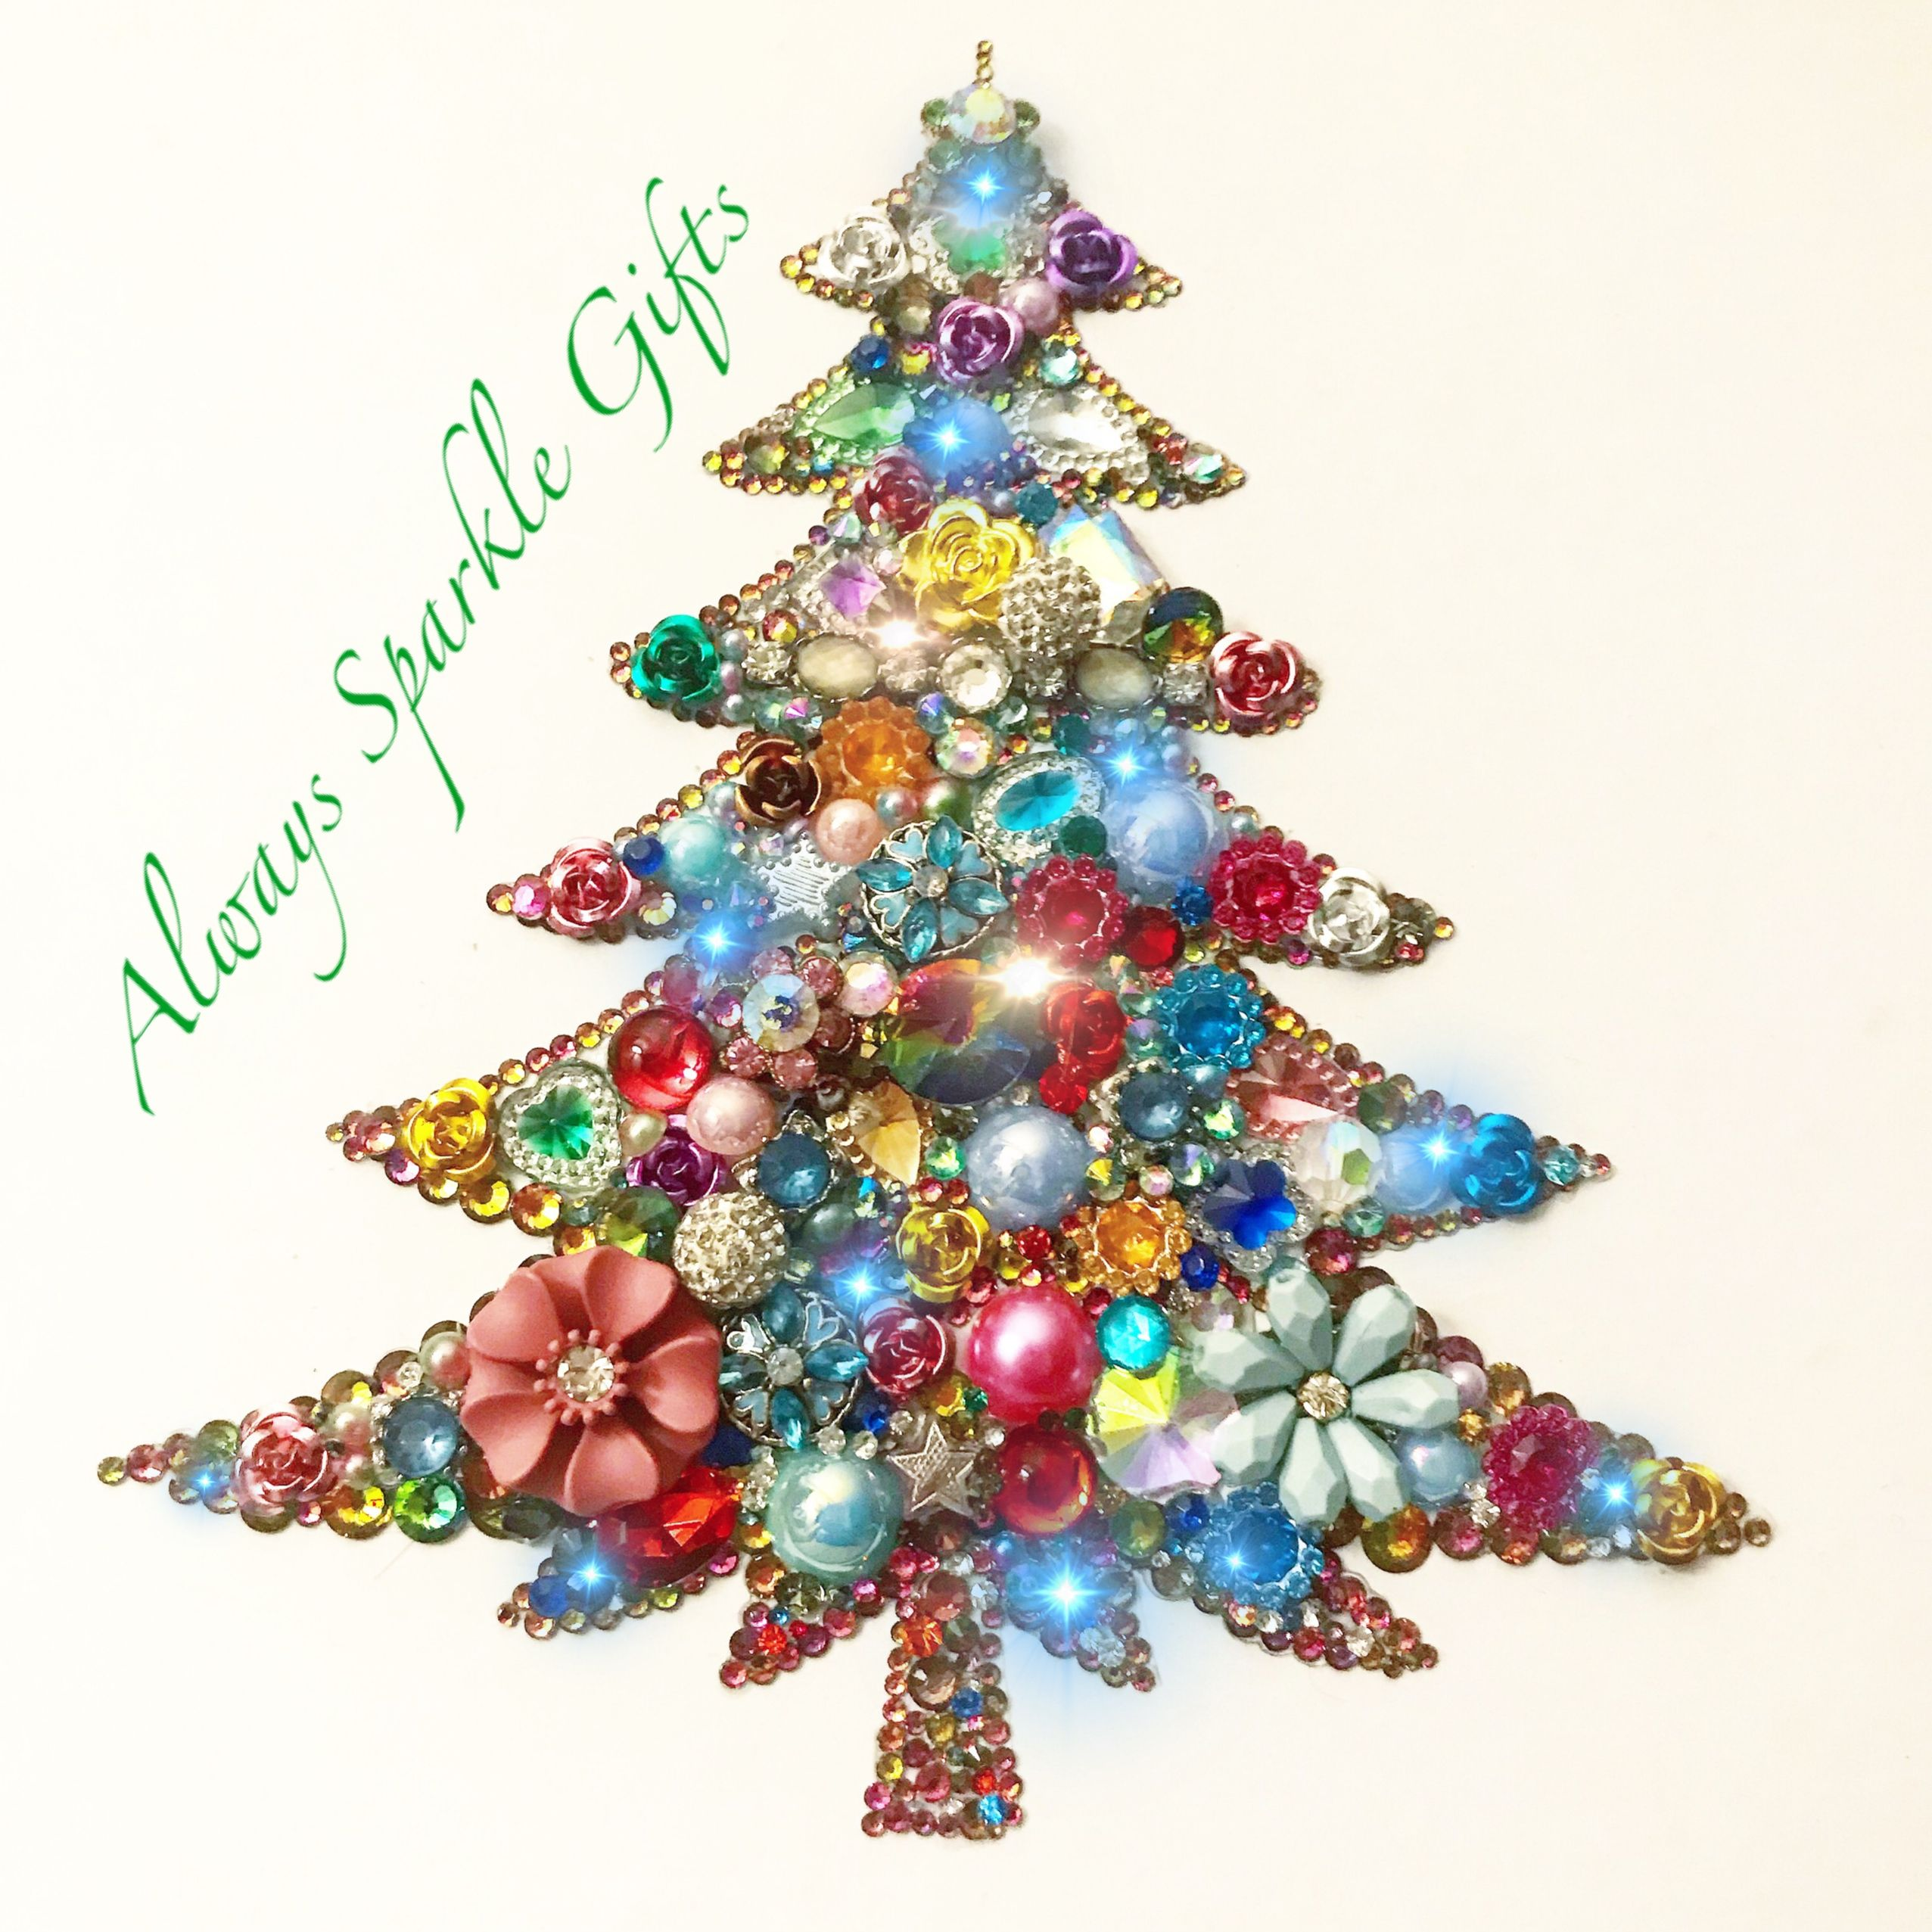 Amazing Sparkling Christmas Tree Button Art Recycled Jewellery Beads Buttons R Vintage Jewelry Repurposed Sparkle Gift Vintage Style Christmas Decorations